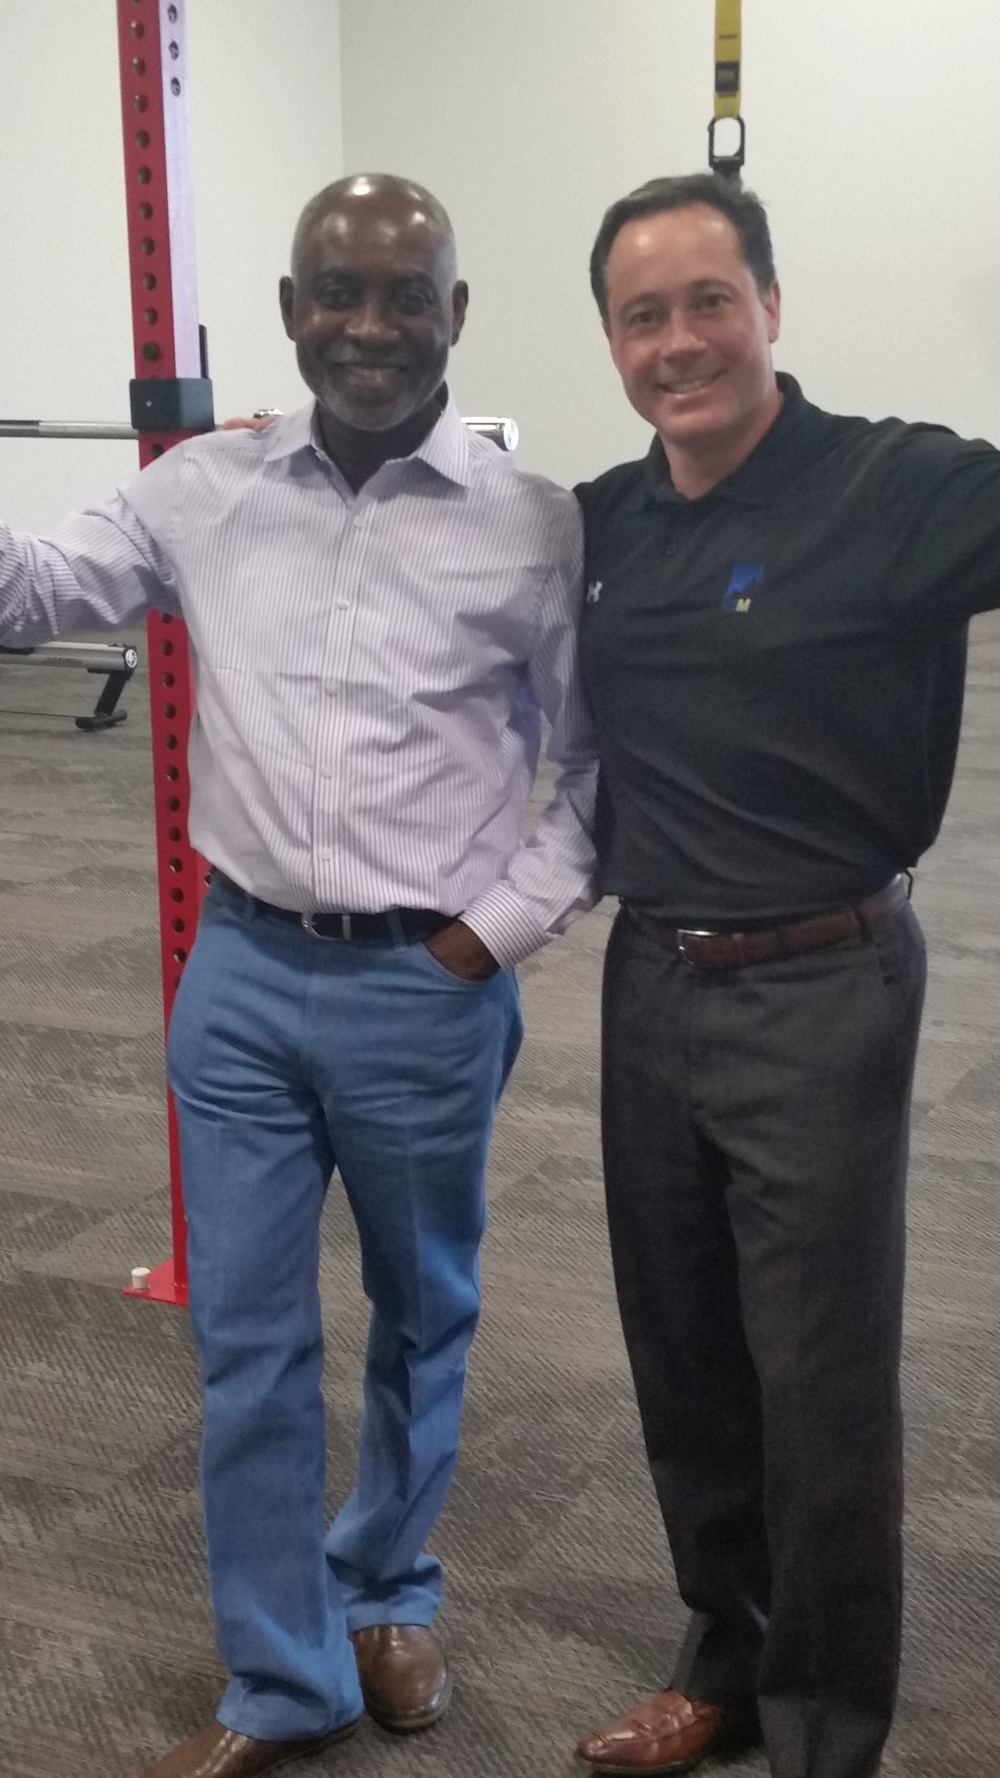 Professor Boachie-Adjei and K2M CEO Mr. Eric Major